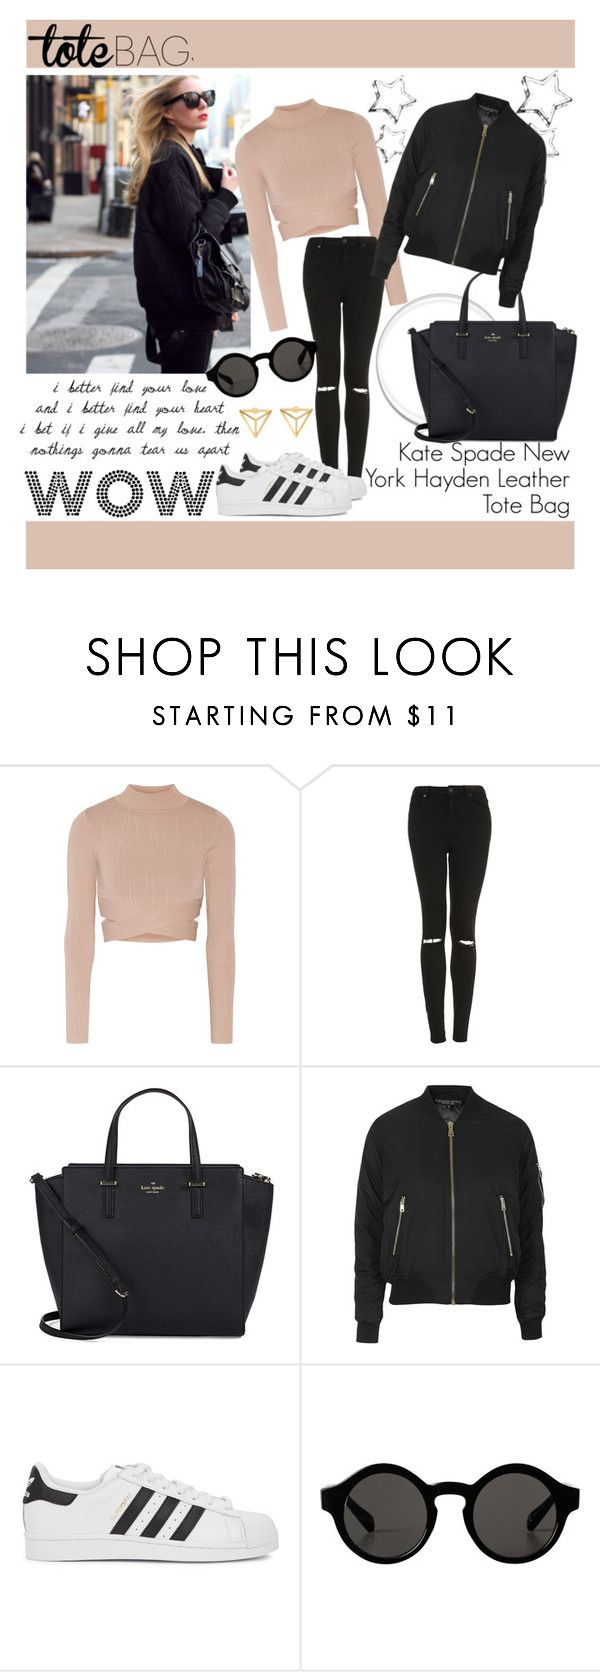 """Tote bag"" by fats-123 ❤ liked on Polyvore featuring Carin Wester, Jonathan Simkhai, Topshop, Kate Spade, adidas Originals and Monki"